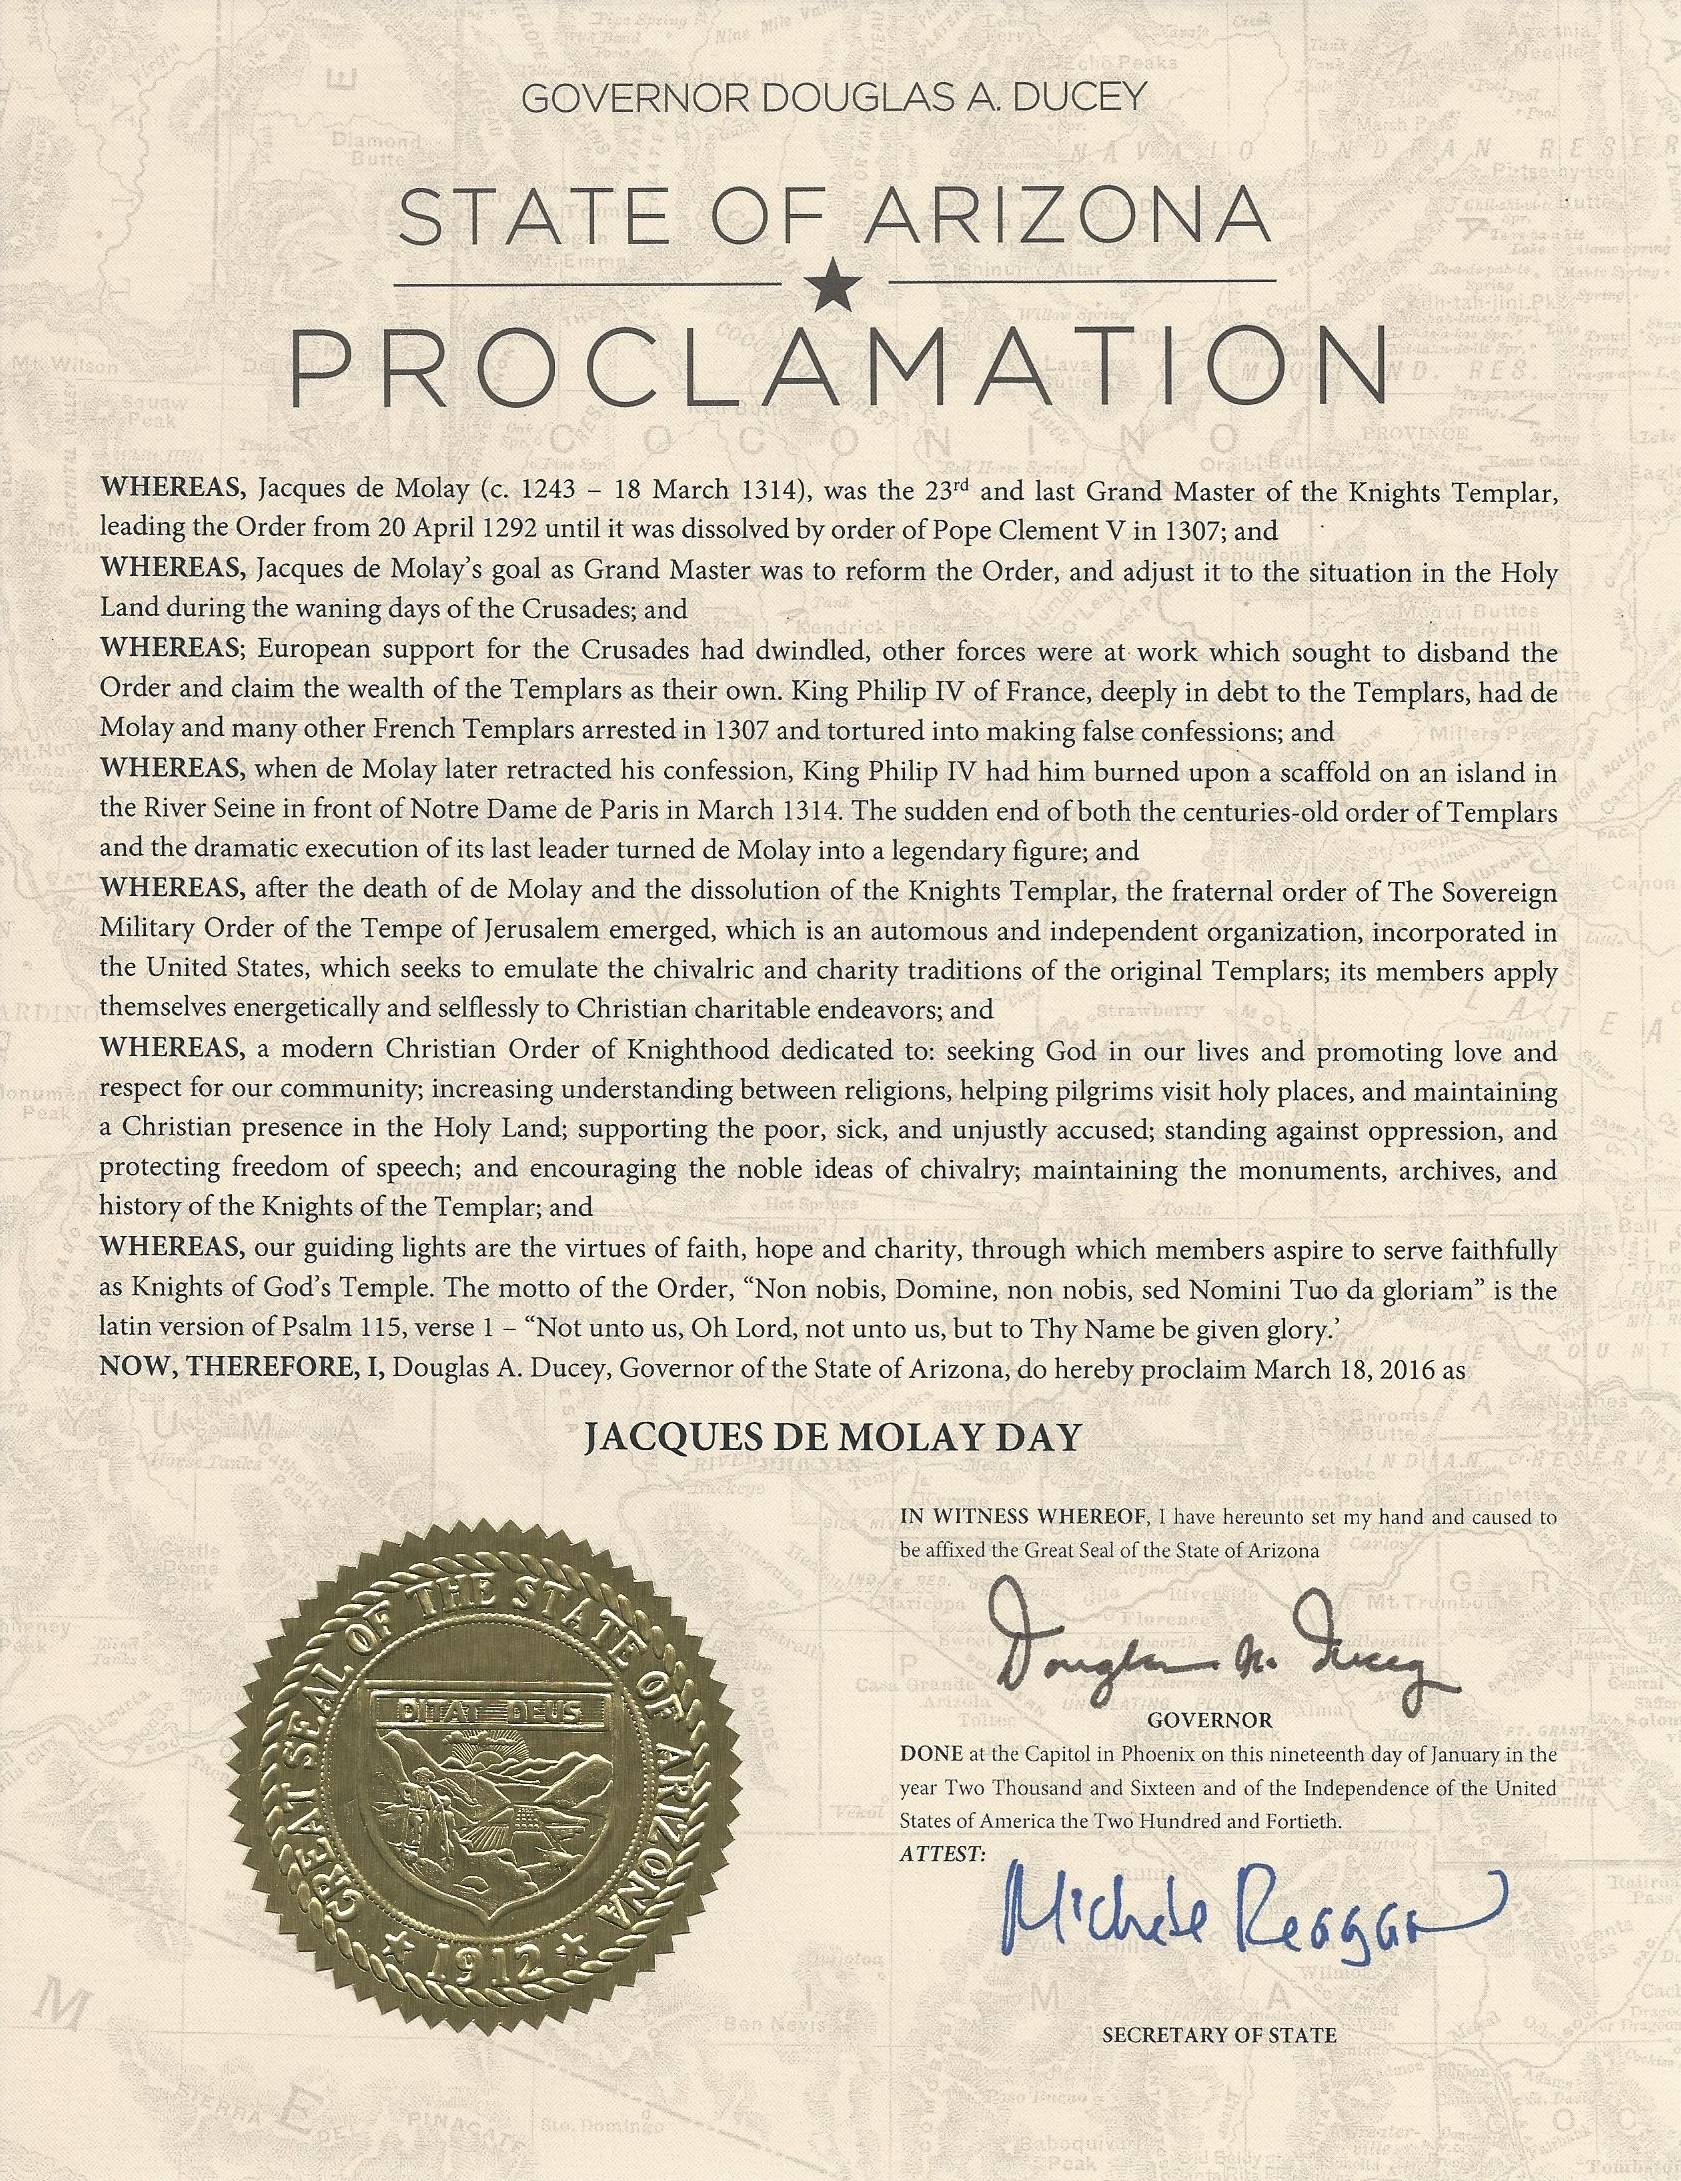 Arizona Proclamation of Jacques DeMolay Day 2016